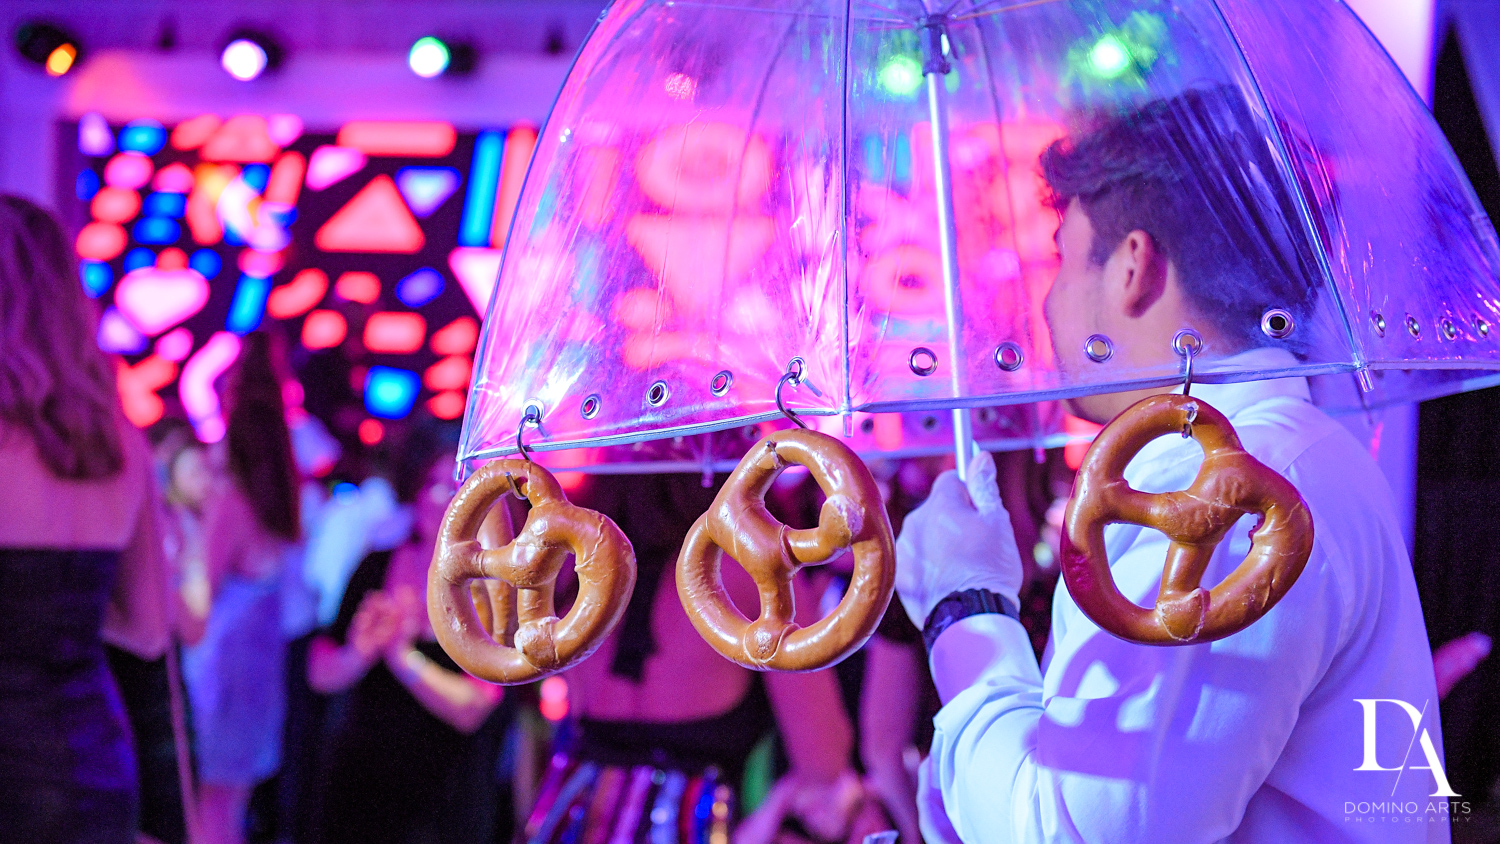 Pretzel umbrella at Masquerade Ball Bat Mitzvah at Ritz Carlton Fort Lauderdale by Domino Arts Photography